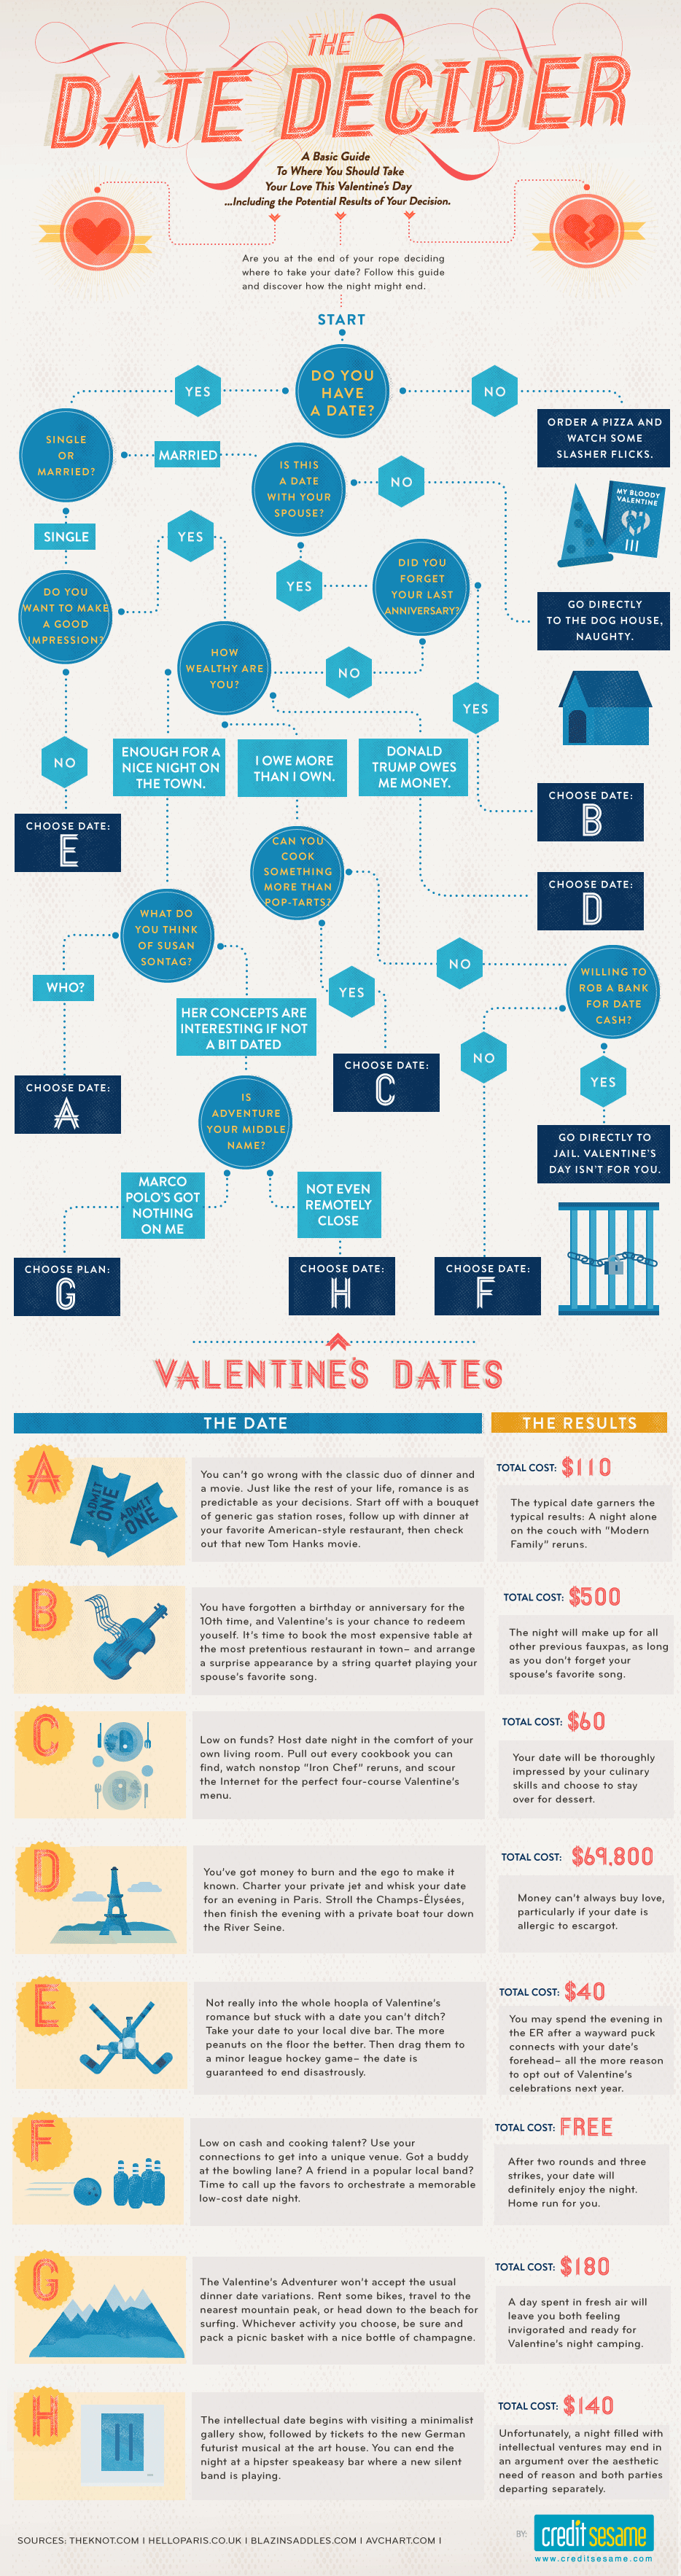 The Date Decider: A Valentine's Day Dating Guide